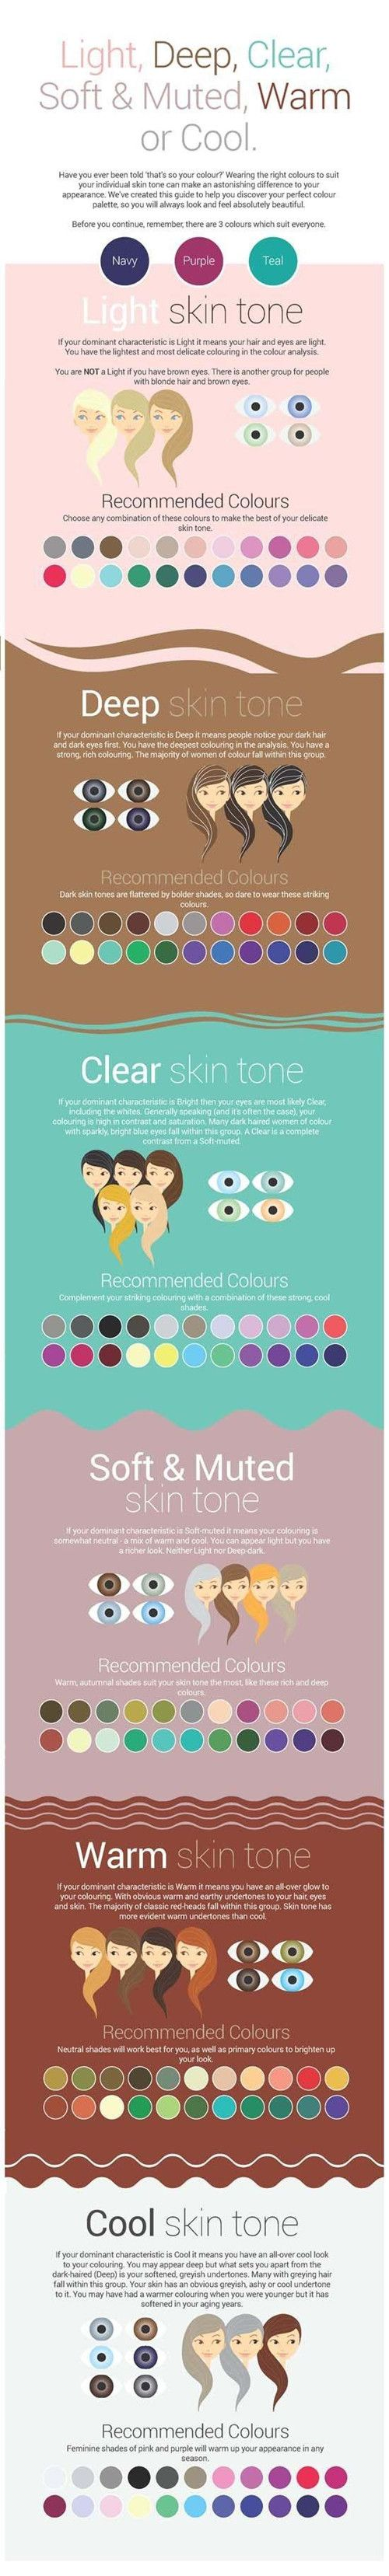 Light, deep, clear, soft & muted, warm, or cool Skin Tone